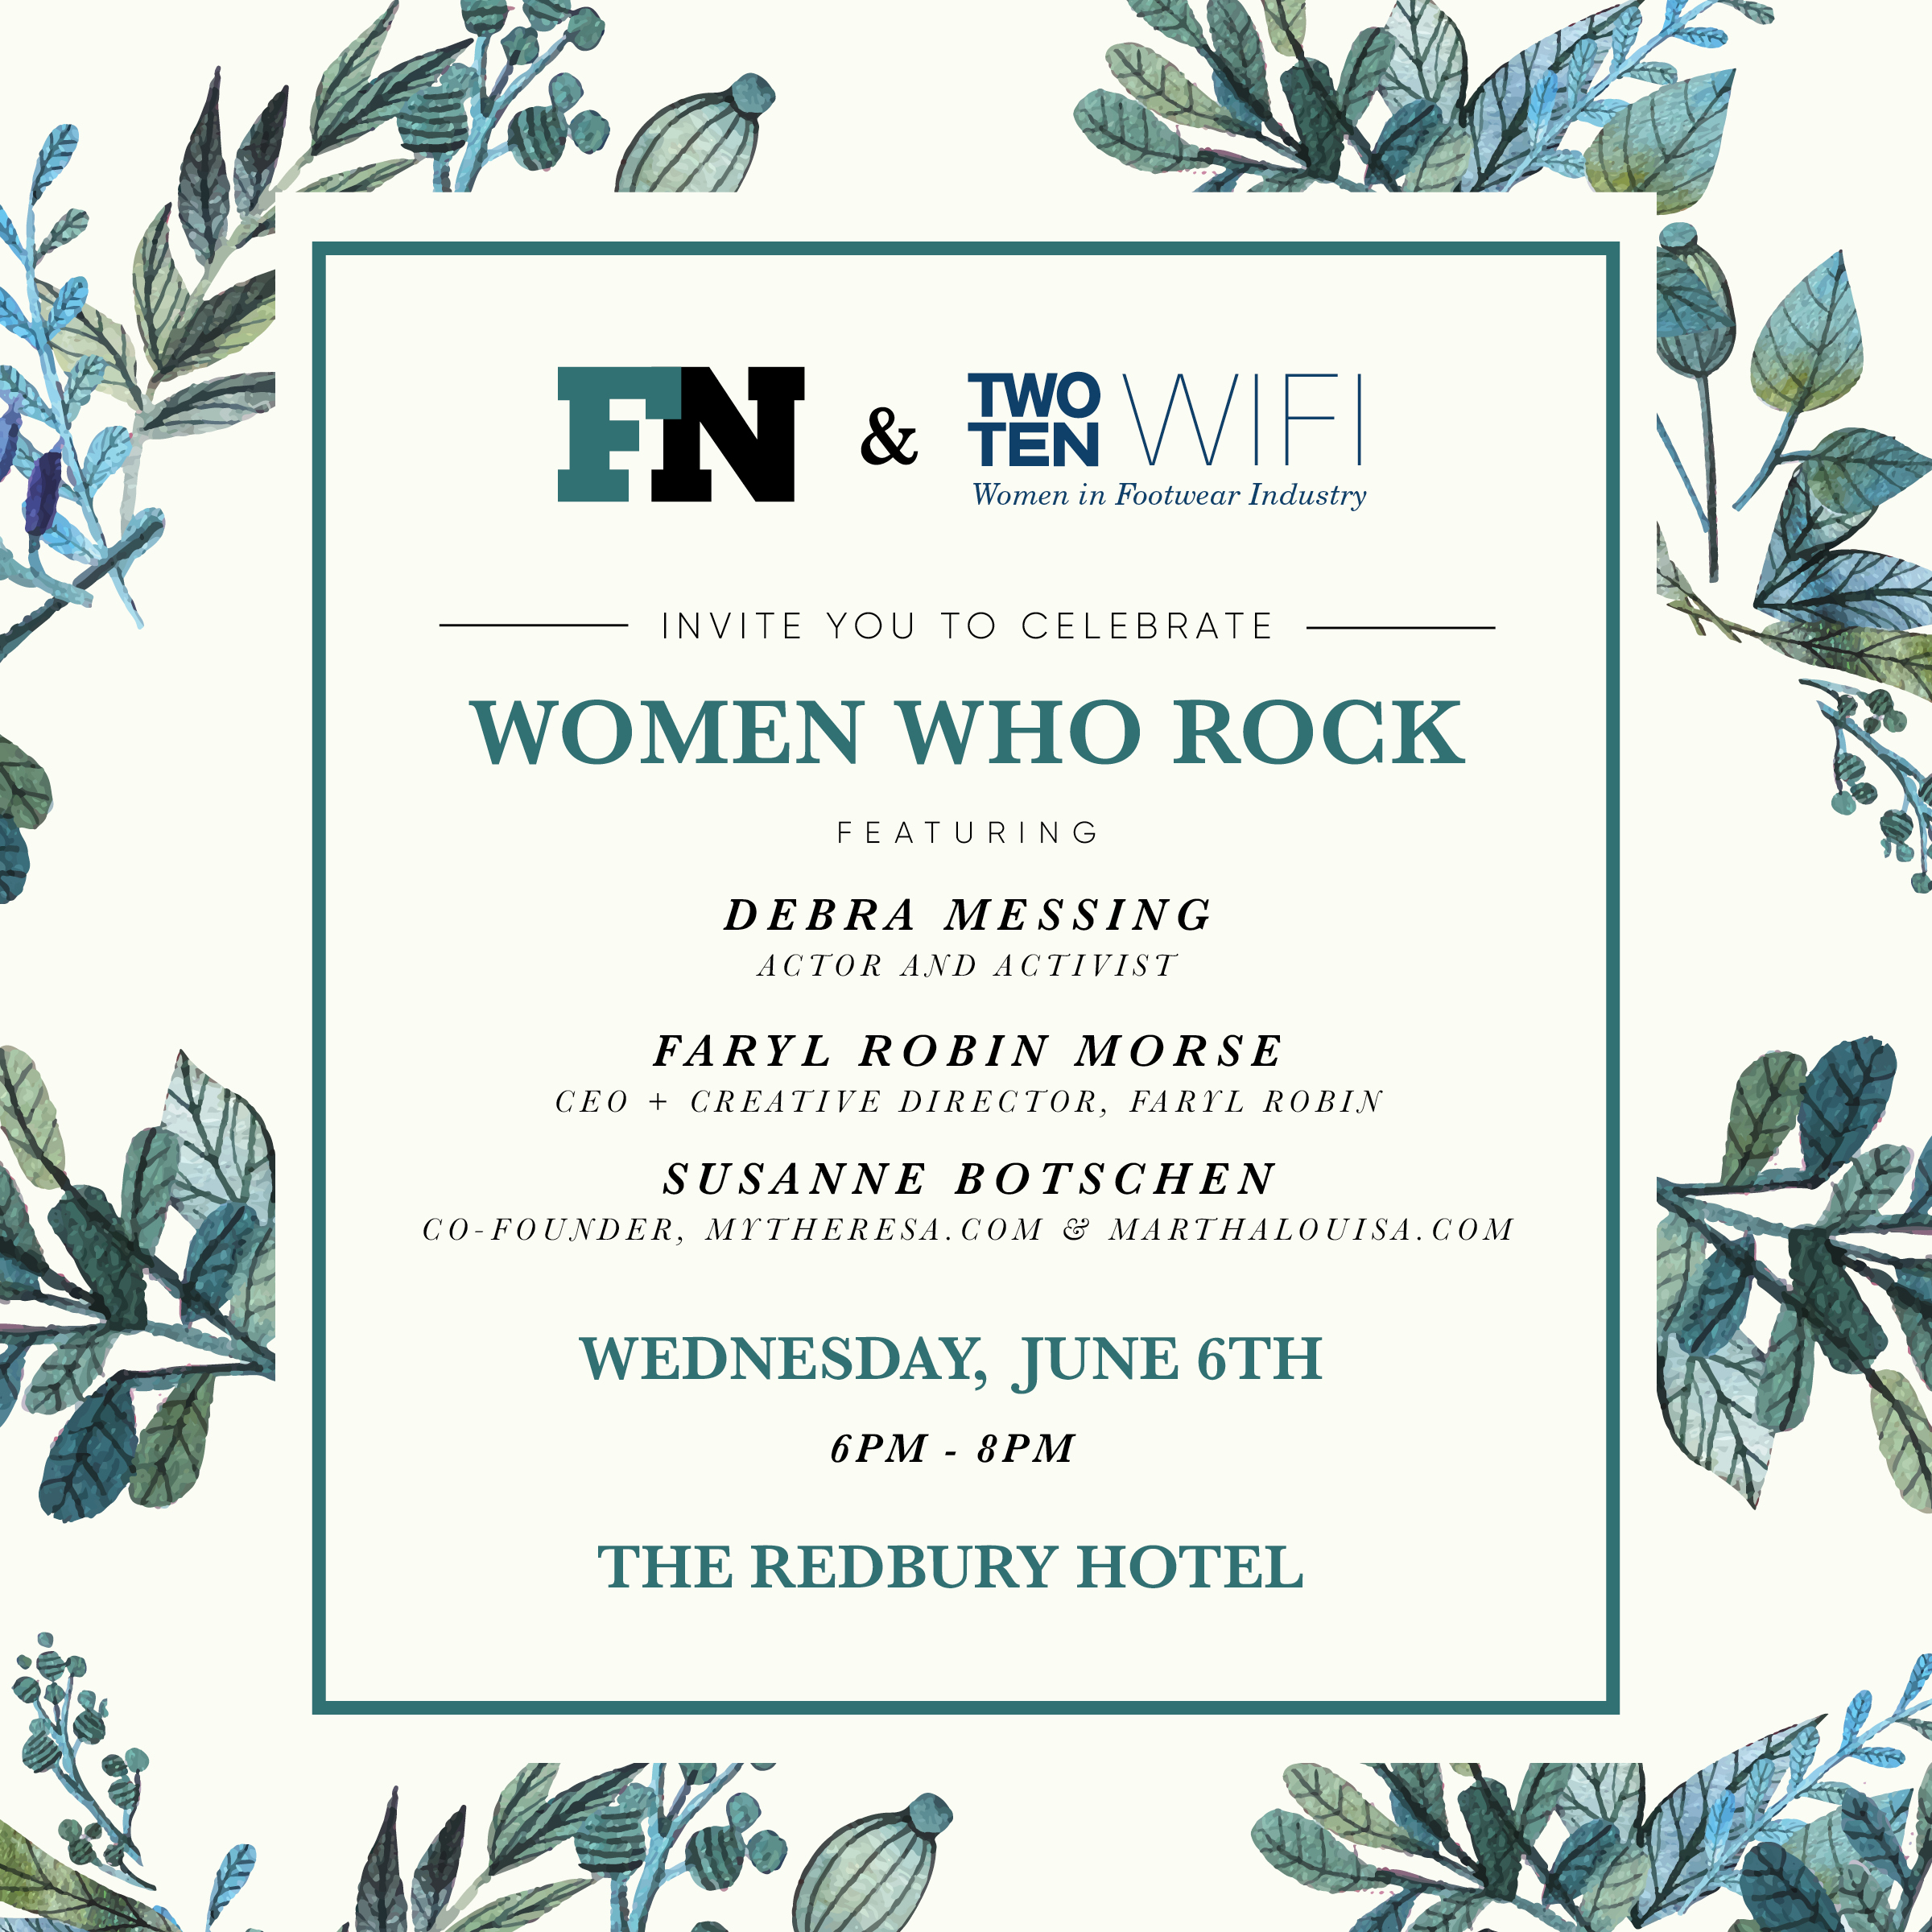 Two Ten WIFI and Footwear News Event, June 2018 @ The Redbury Hotel